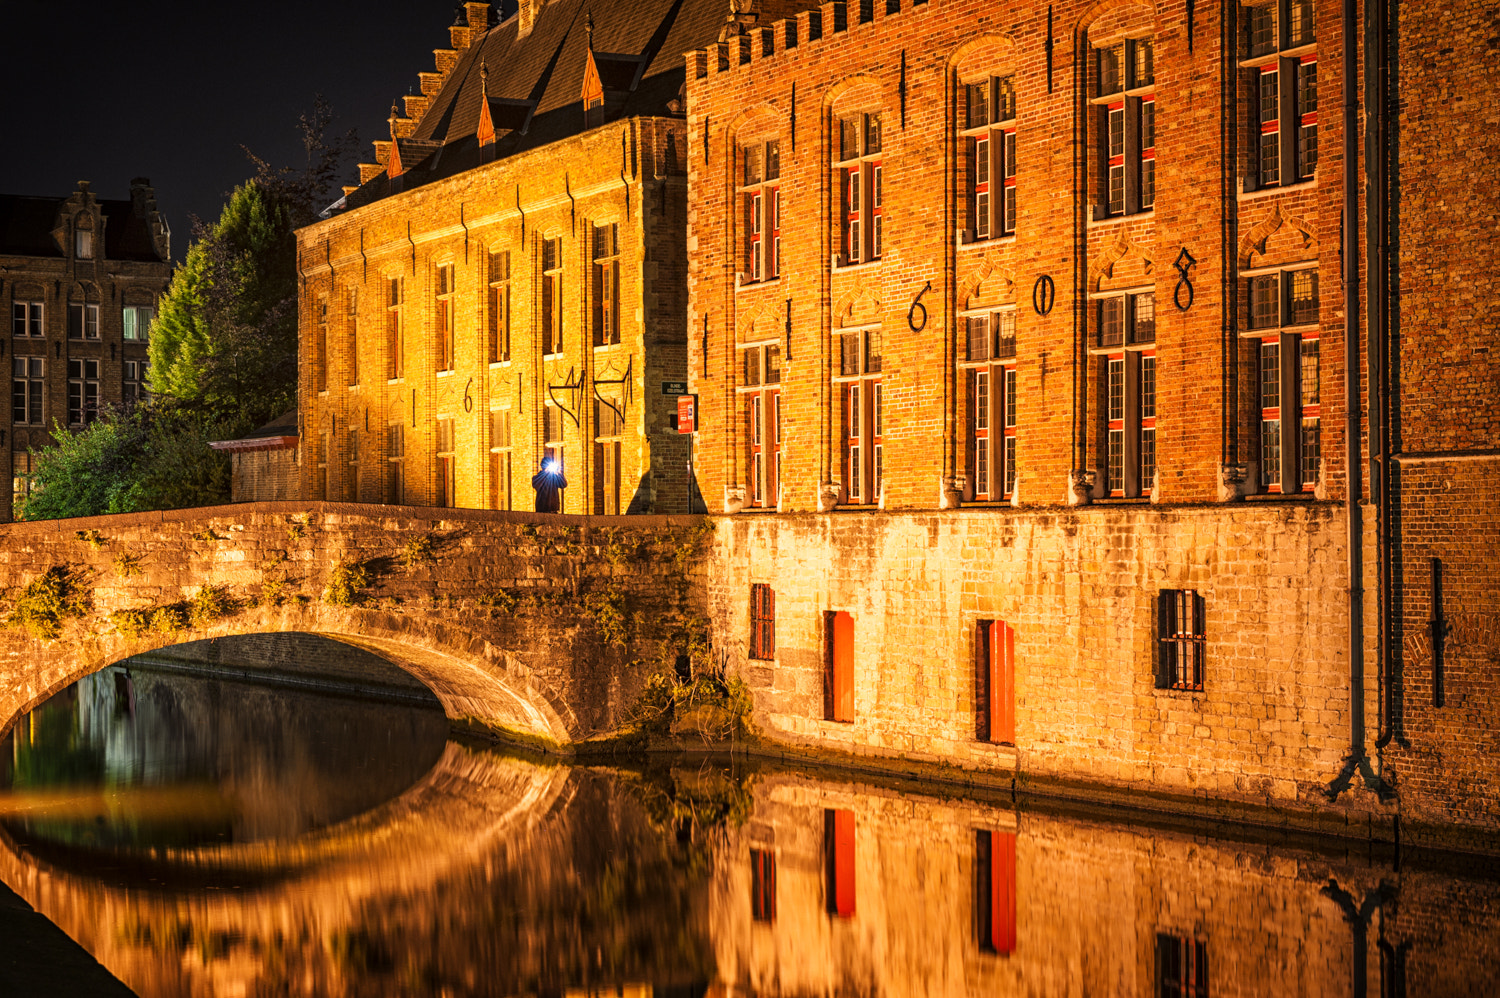 Photograph Shot in Bruges by Allard Schager on 500px